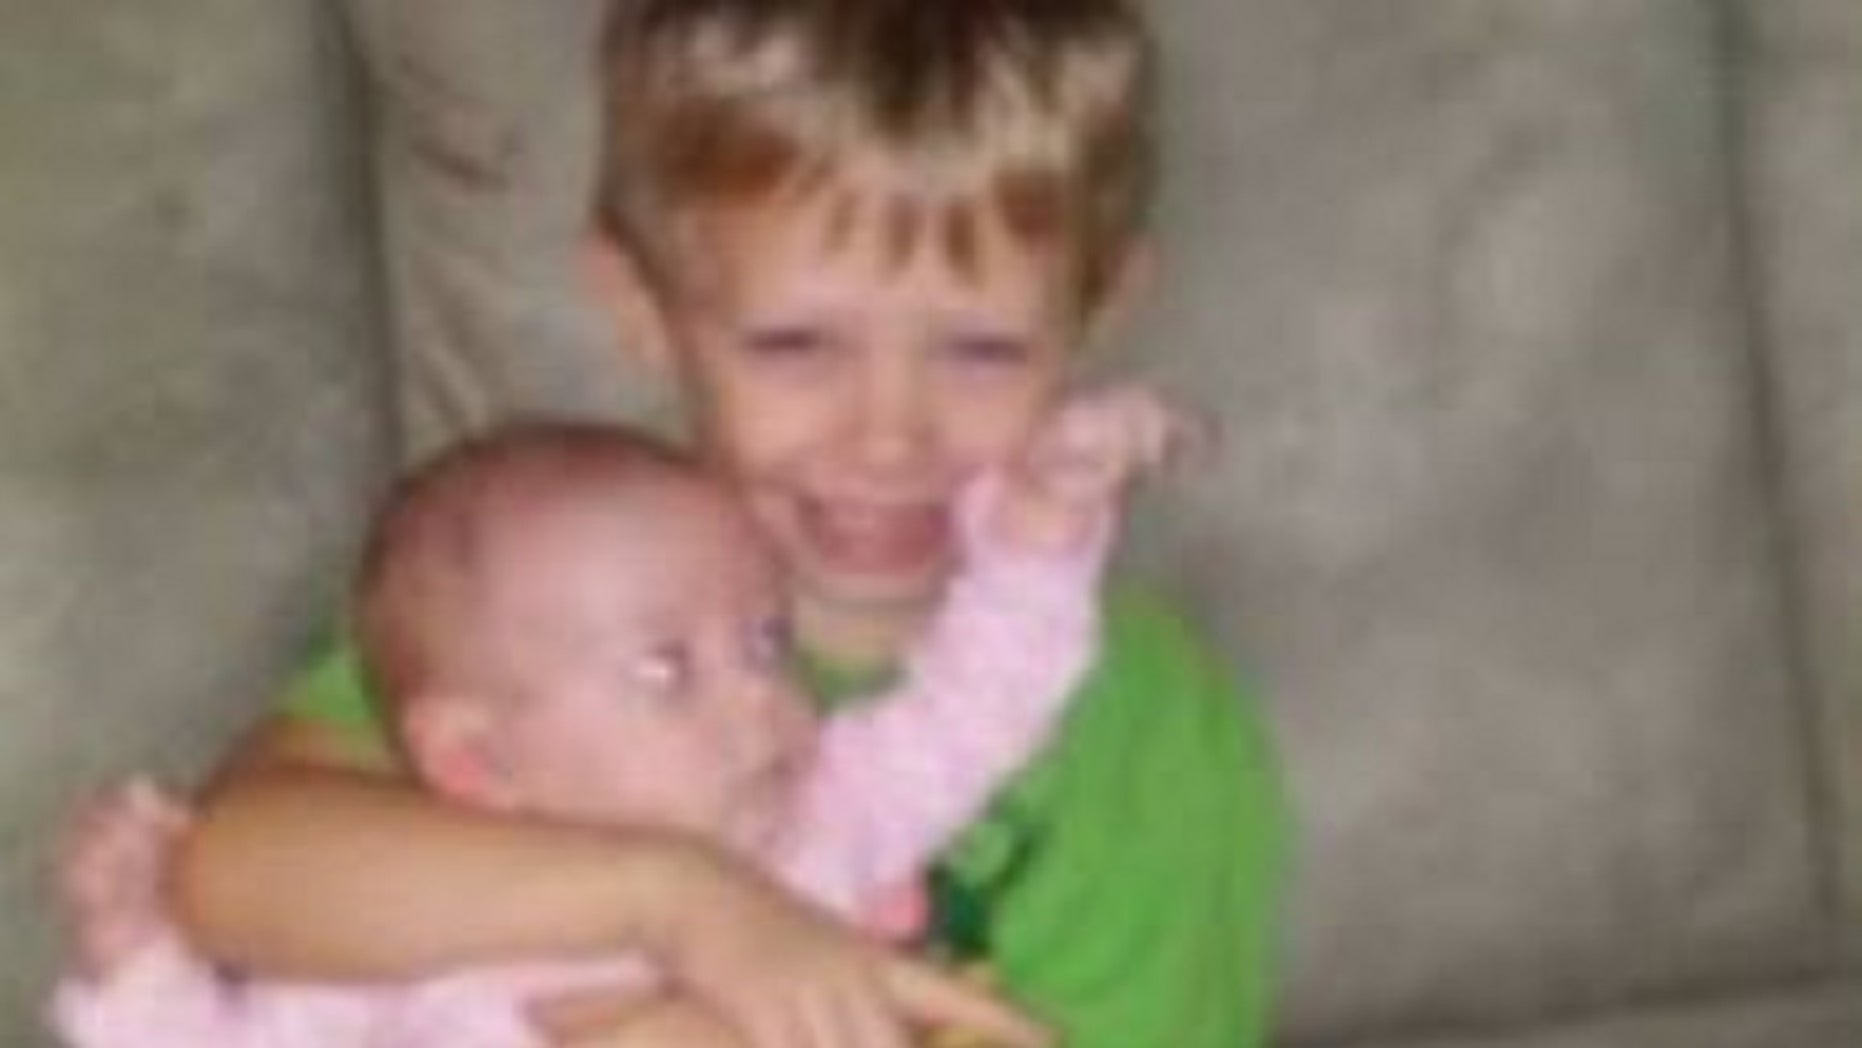 Kayleigh, 1, and 6-year-old Dalton have been identified by family members as two of three children dead from climbing in a freezer.